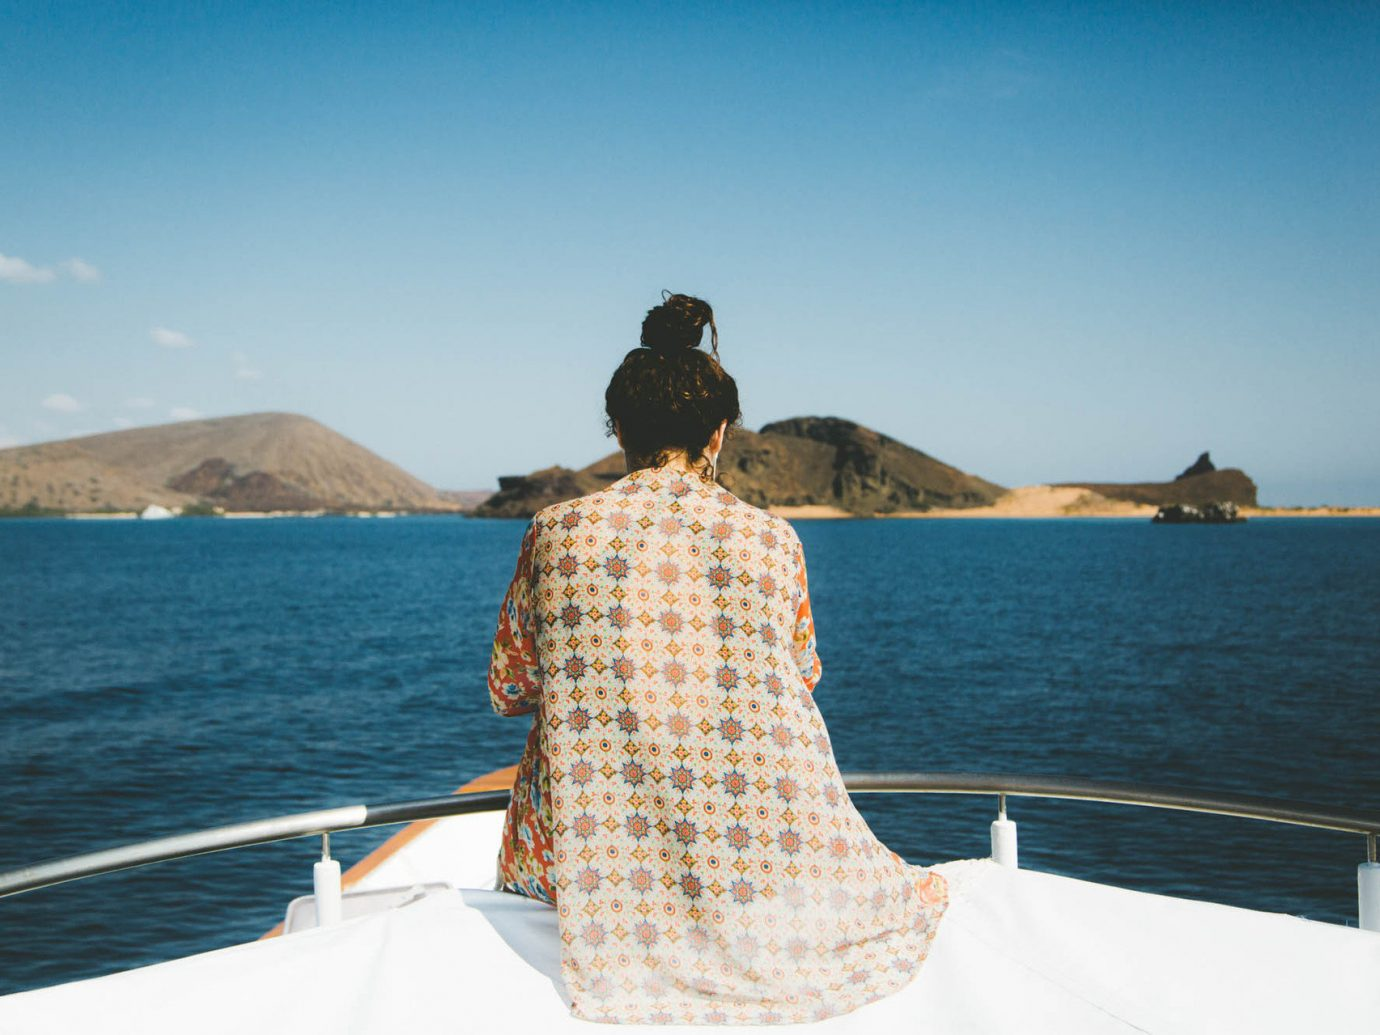 artistic artsy calm Hip Luxury Mountains Ocean people remote Rocks sand serene south america trendy Trip Ideas woman yacht sky water outdoor Sea vacation Boat vehicle Beach bay watercraft boating cape day